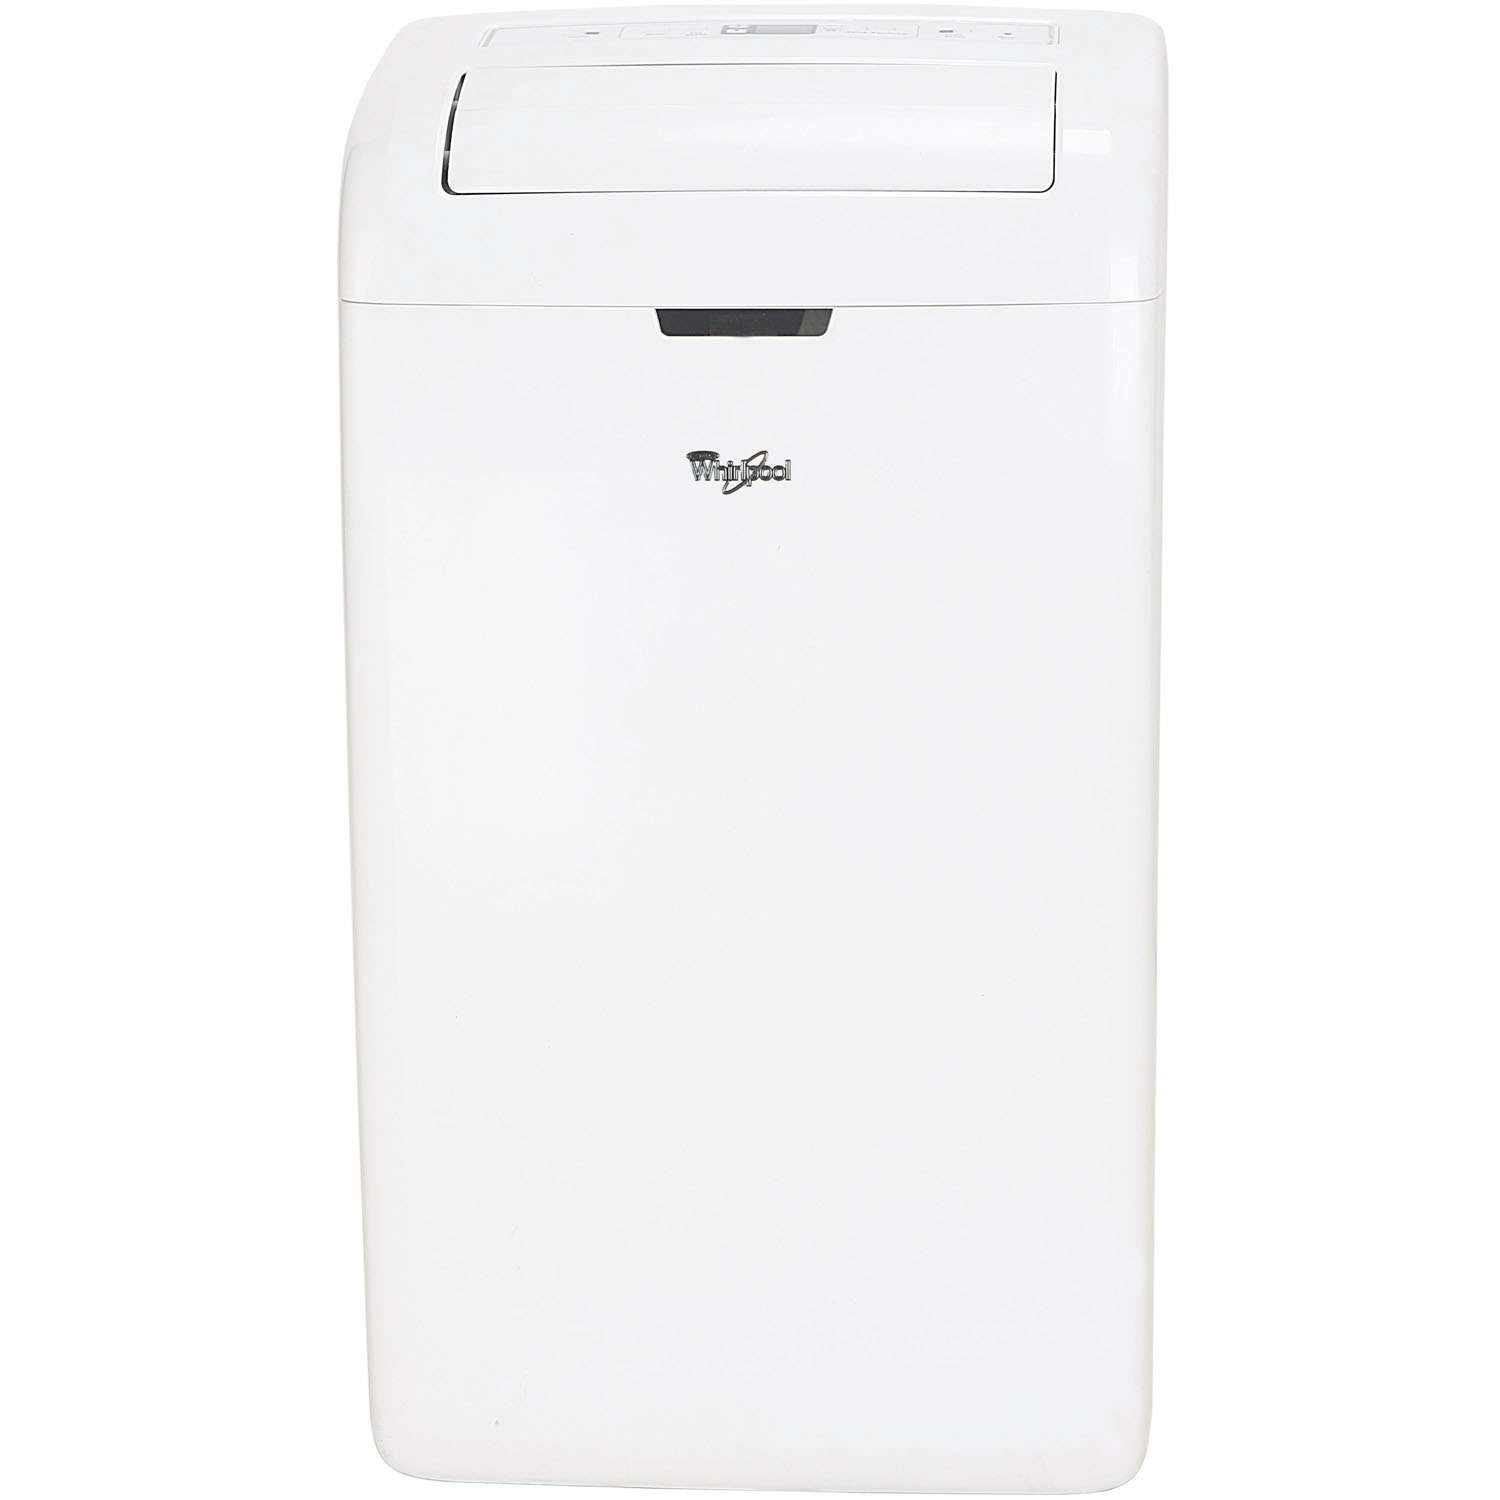 14 000 Btu Dual Exhaust Portable Air Conditioner With